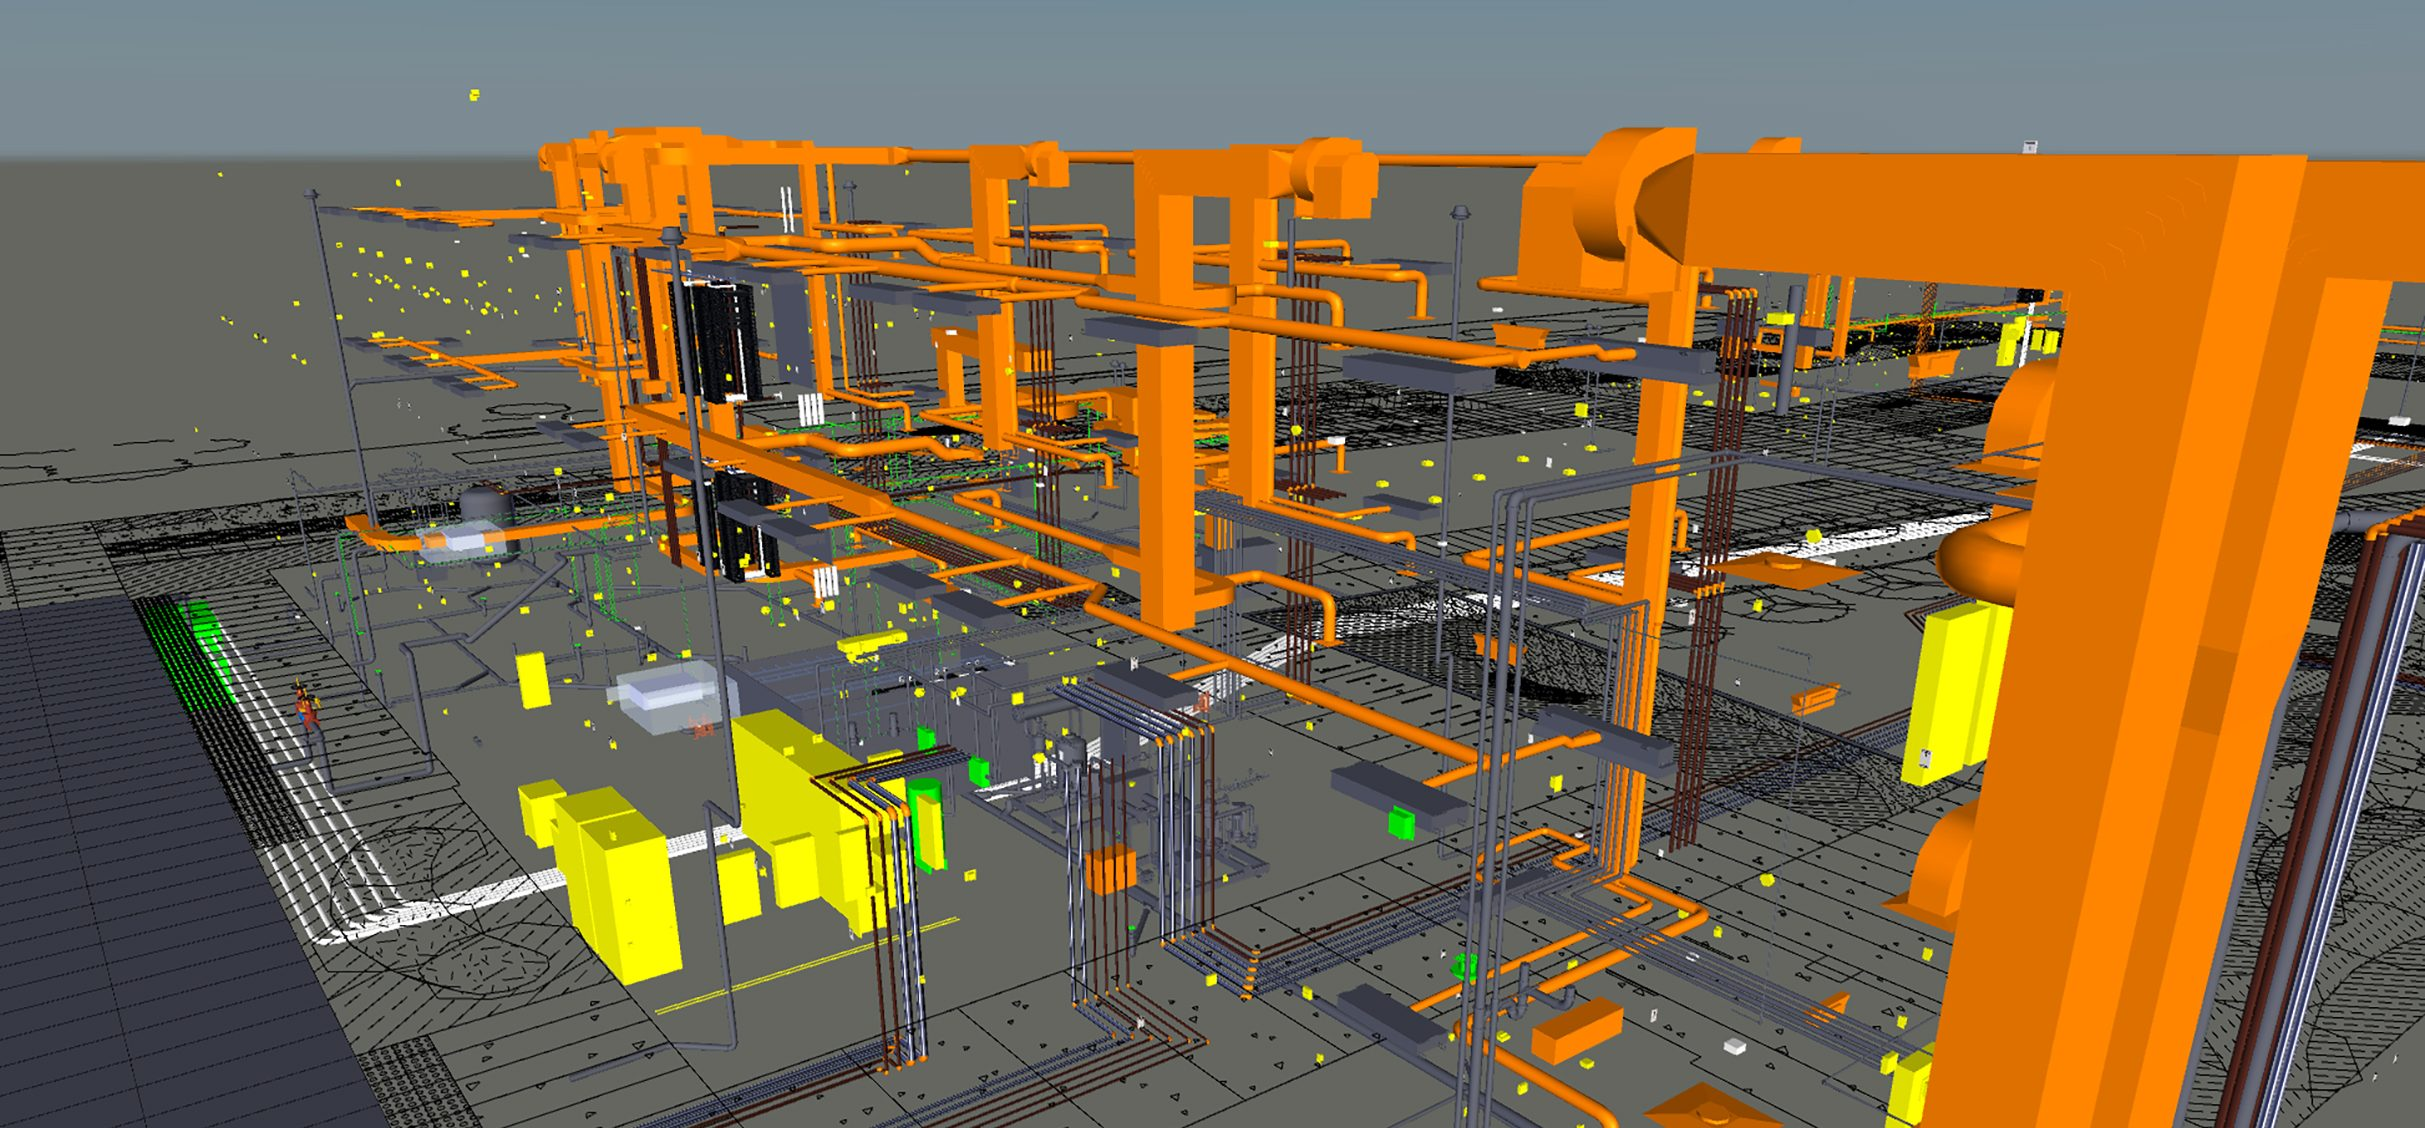 Clash Detection Caltech Bechtel bim rendering matt construction